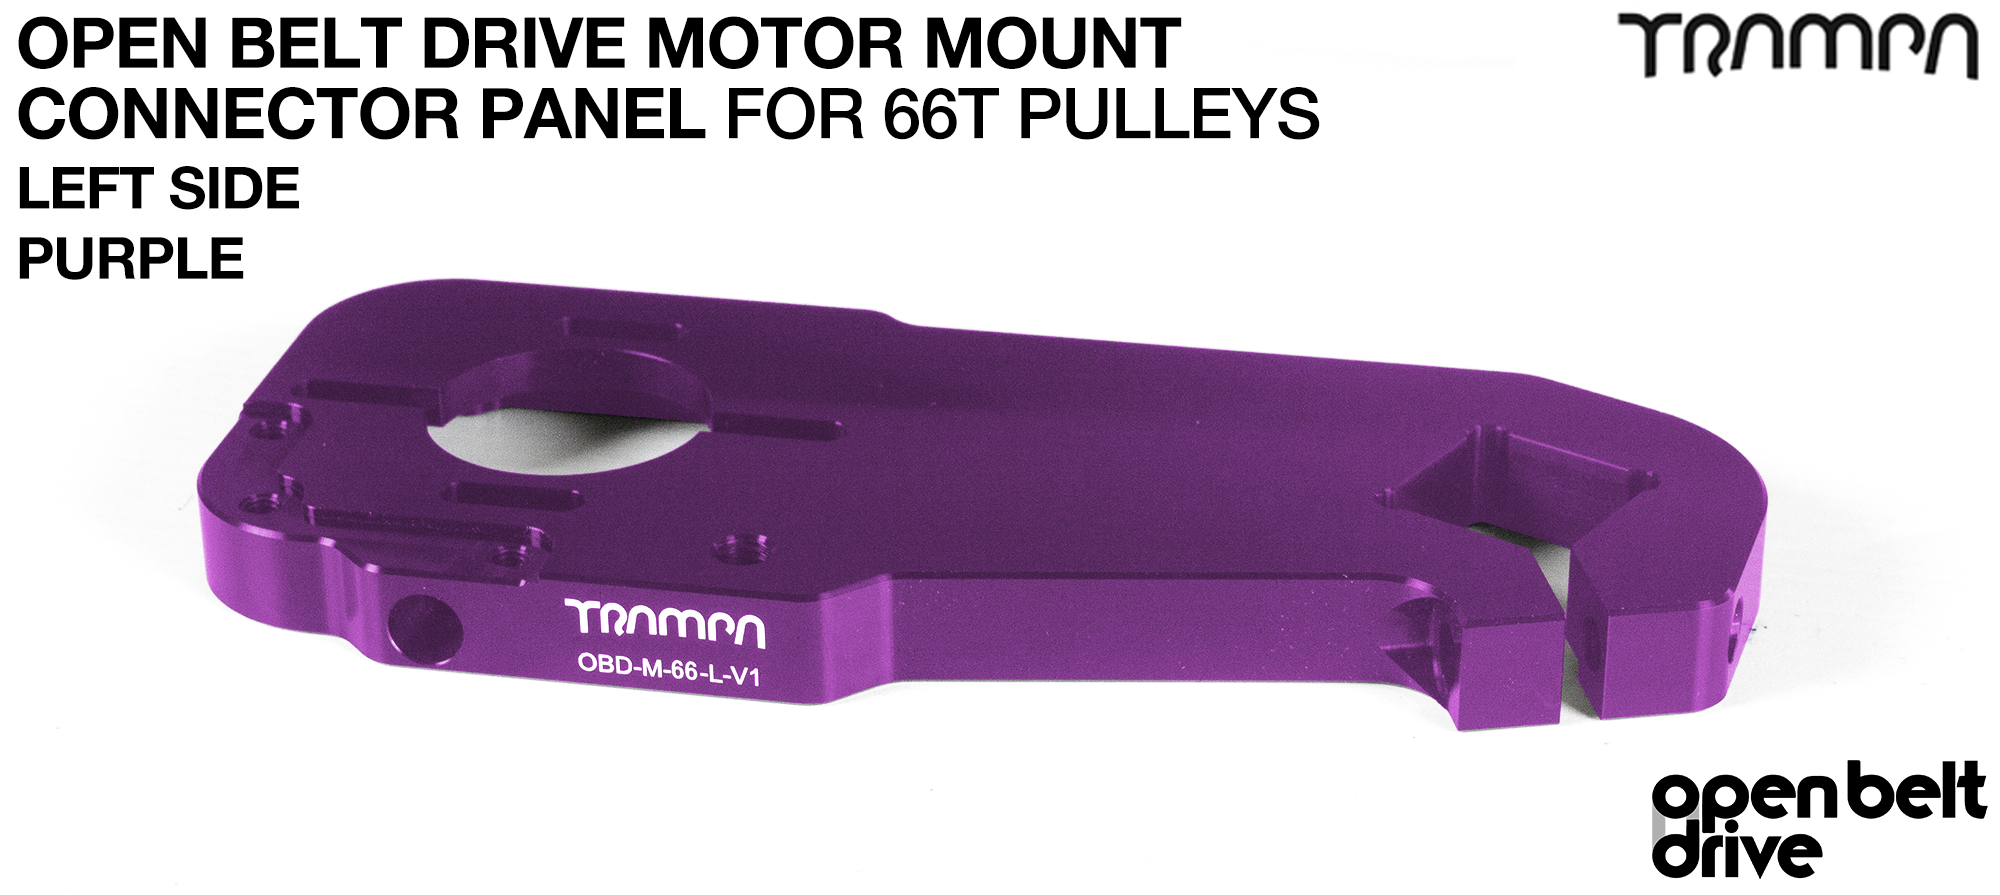 OBD Motor Mount Connector Panel for 66 tooth Pulleys - REGULAR - PURPLE